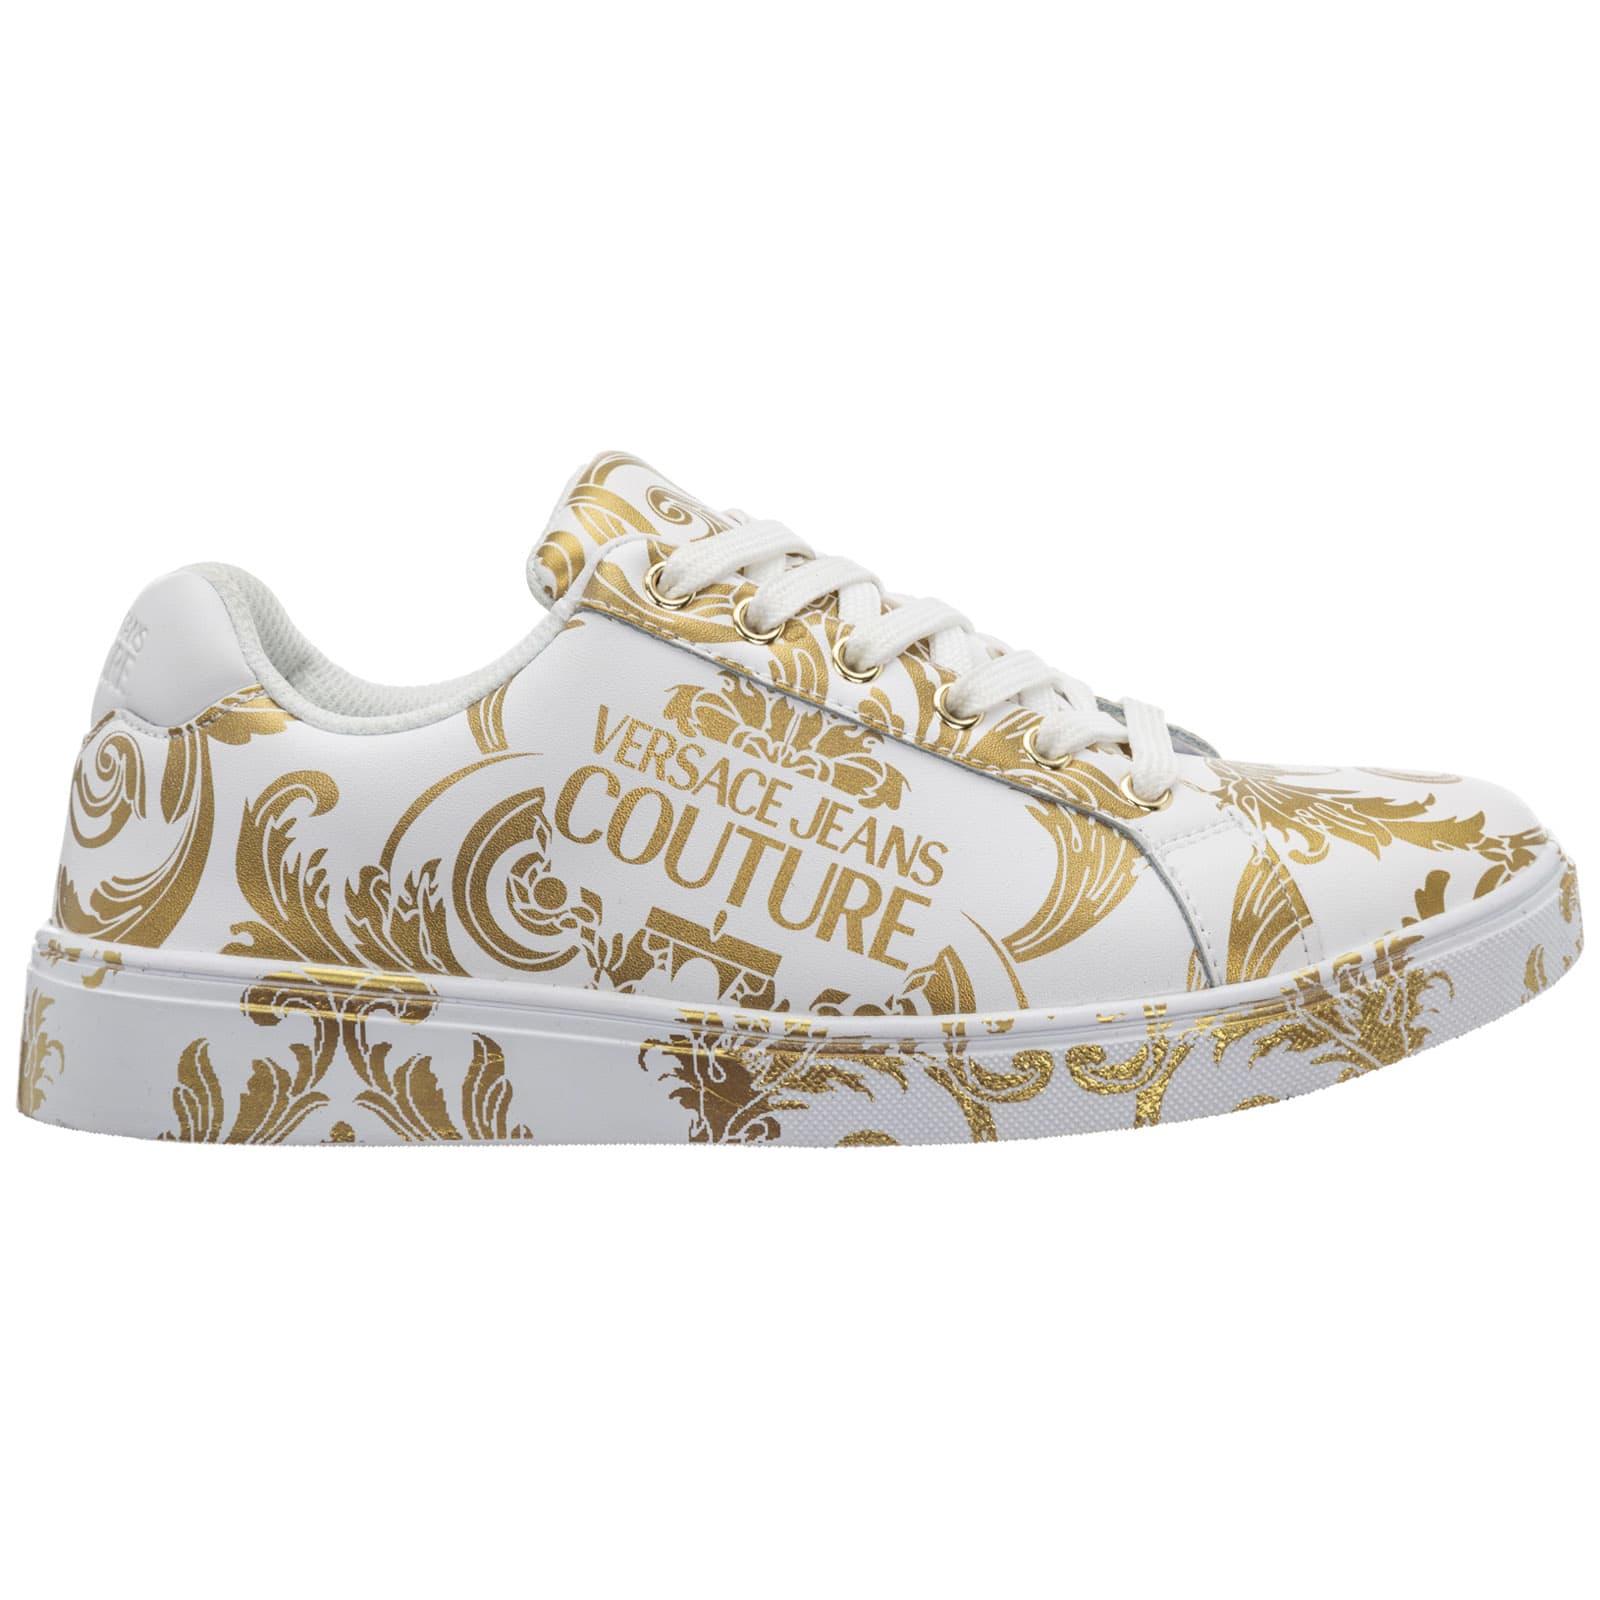 Versace Jeans Couture FONDO O.M. SNEAKERS